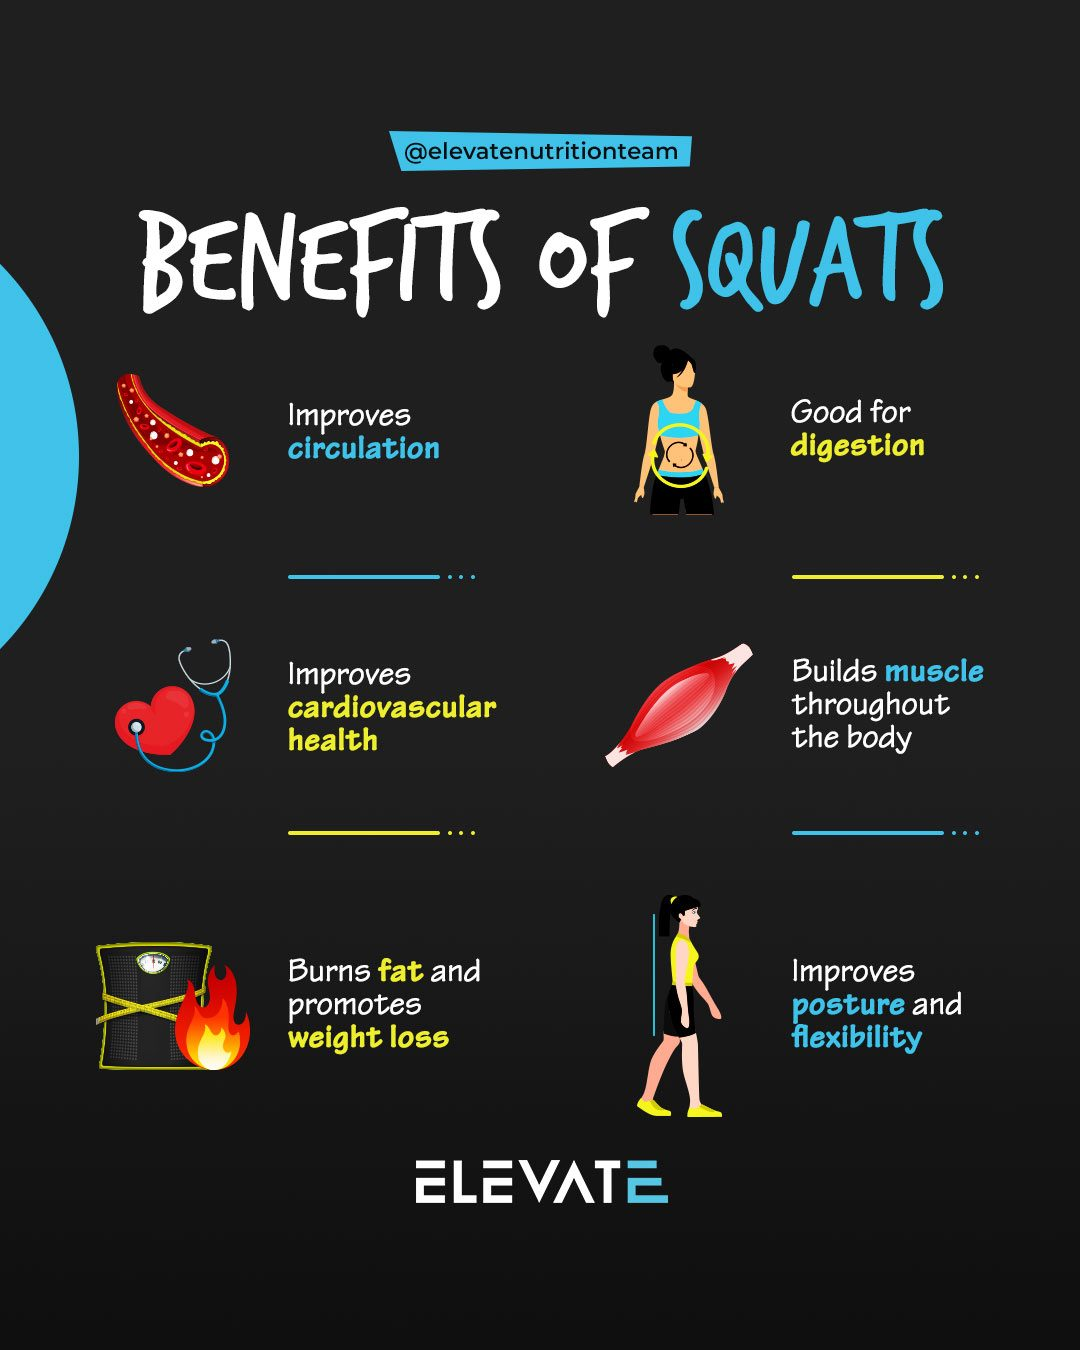 Elevate Nutrition Squat Guide Benefits of Squats